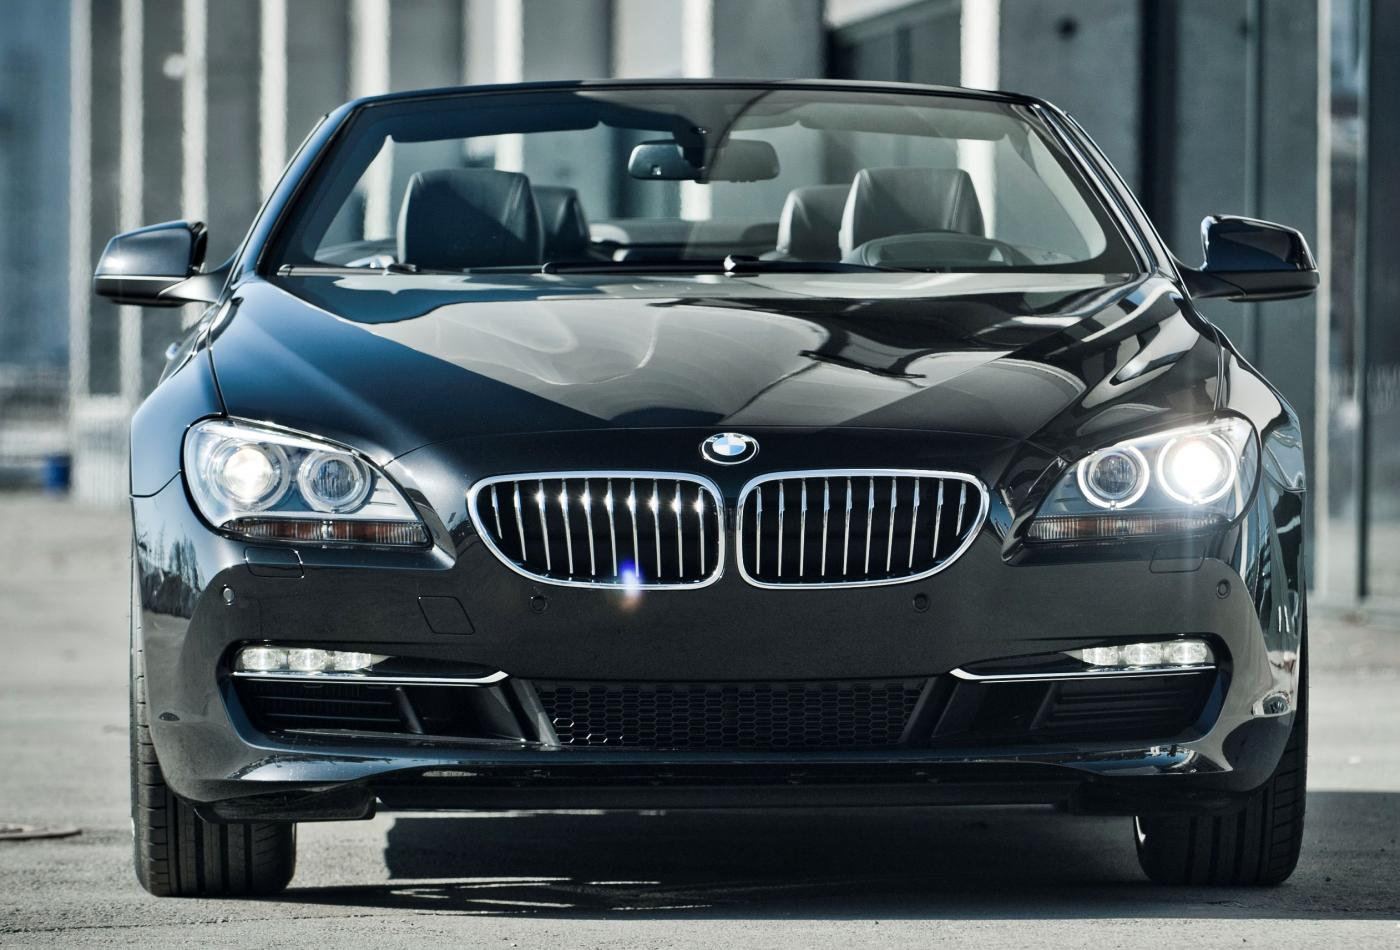 2012 bmw 6 series 650i coupe black sapphire metallic color black - Attached Images